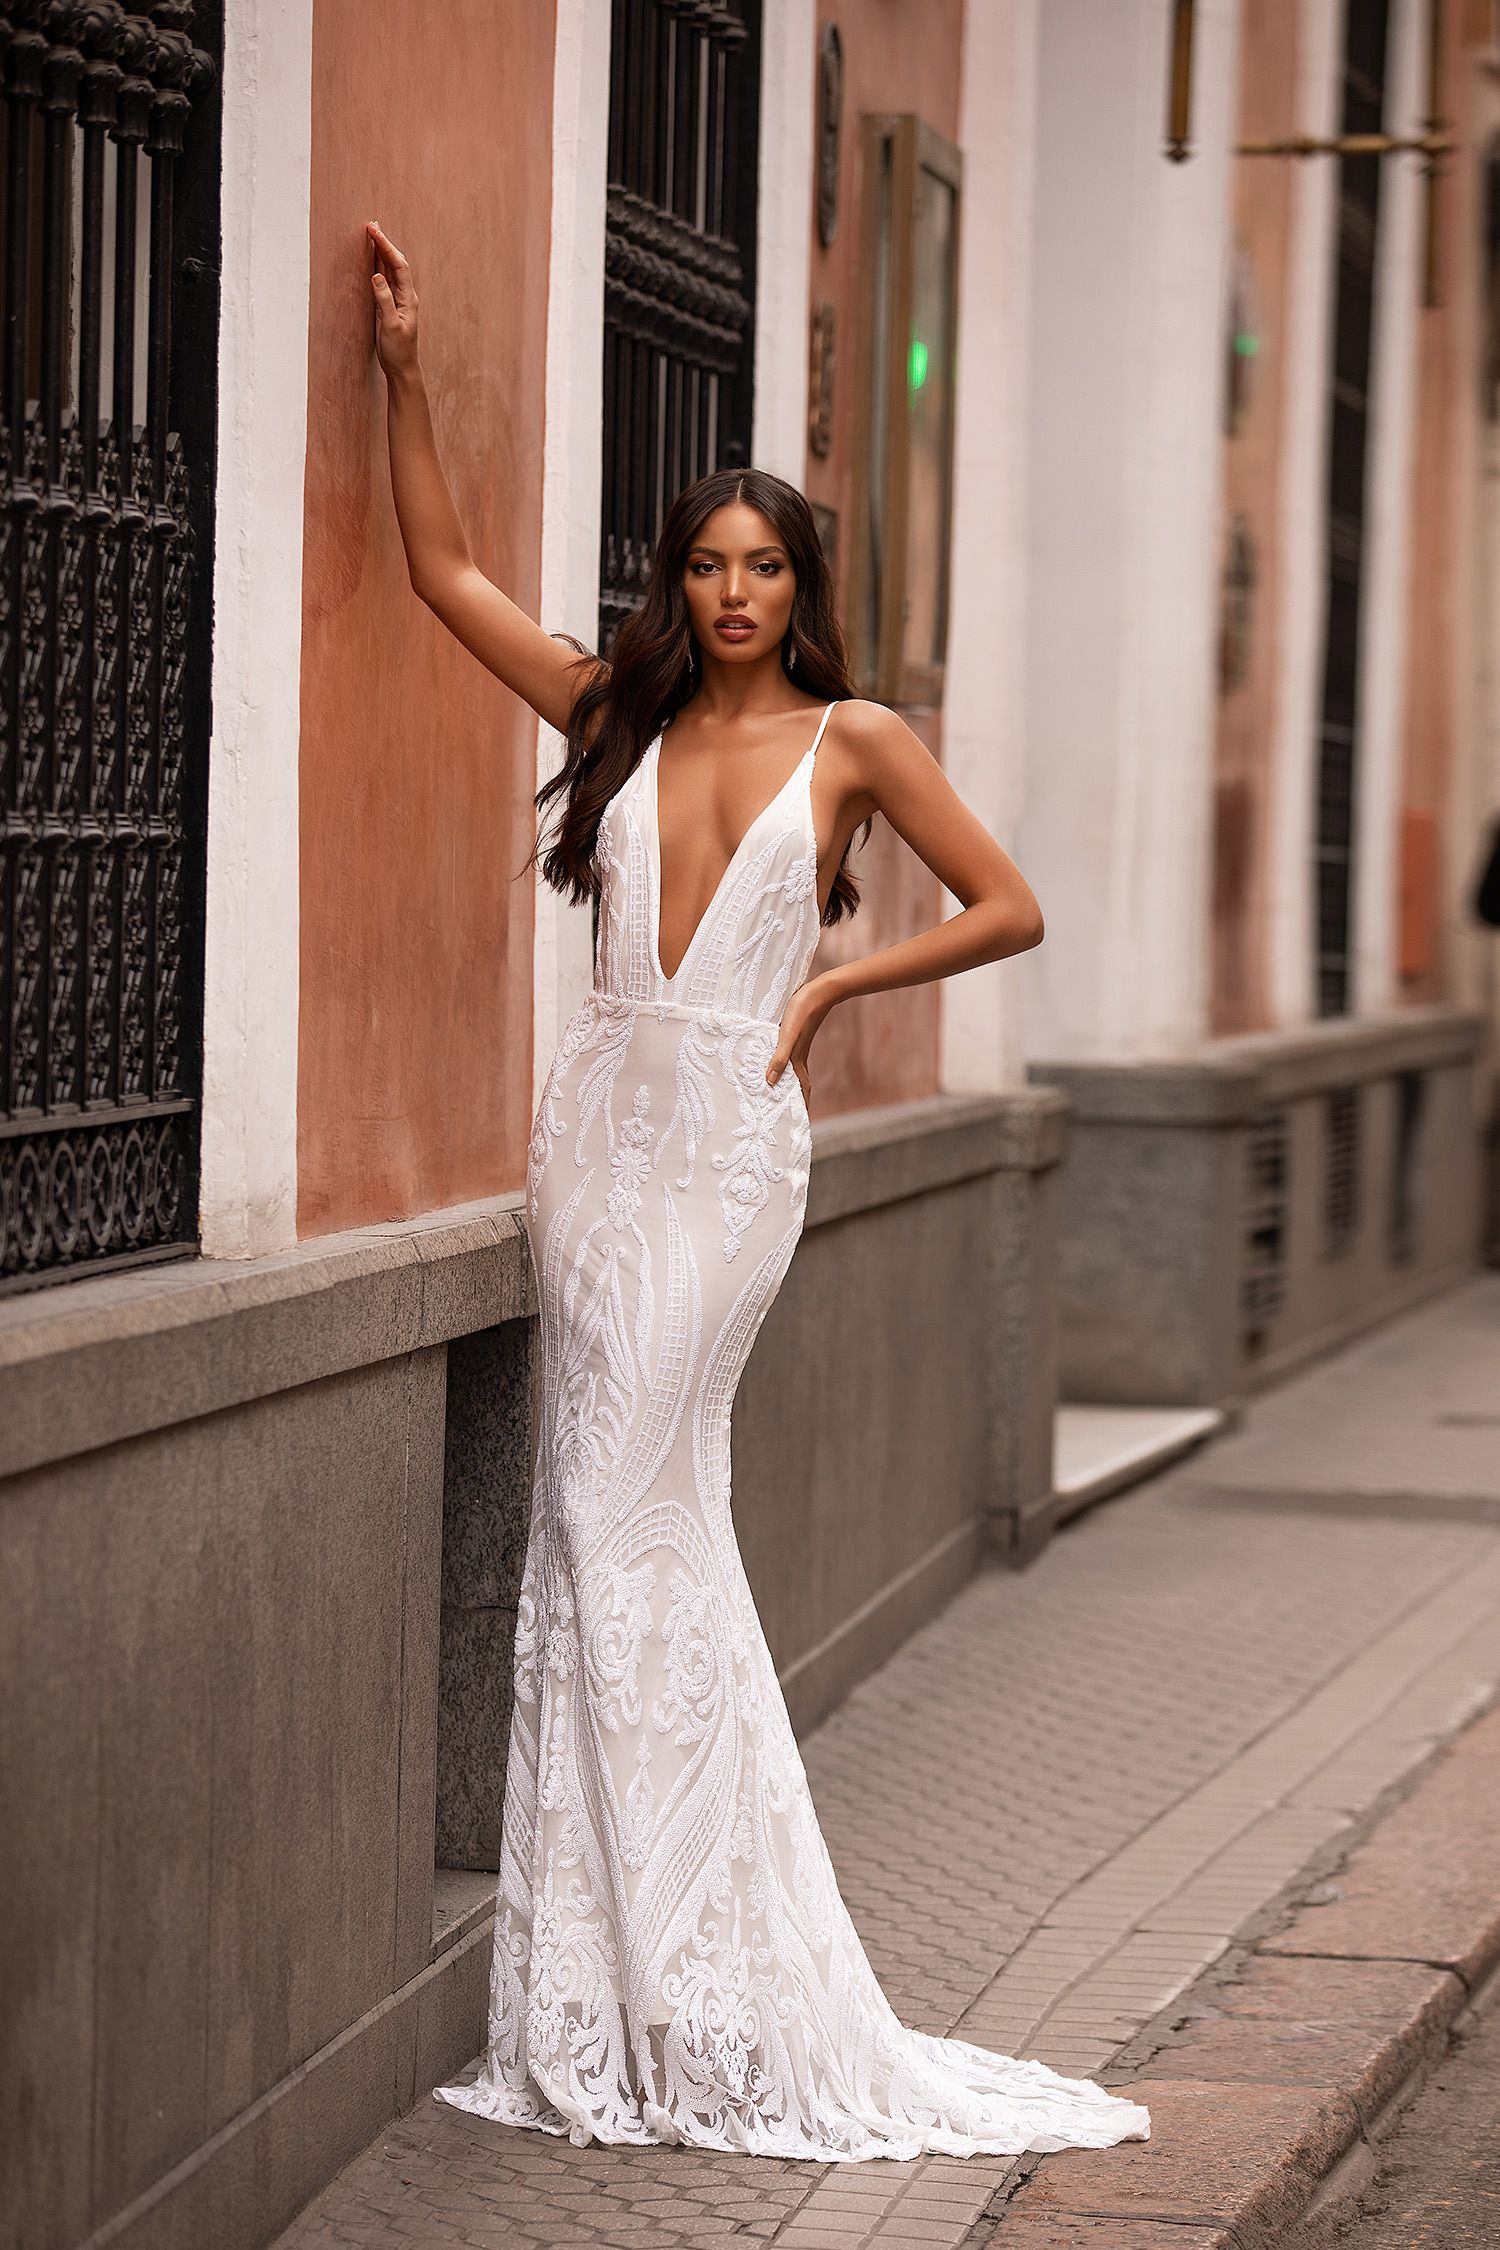 Lilana Sequin Gown White Sequin Gown Frocks And Gowns Long Sequin Dress [ 2250 x 1500 Pixel ]